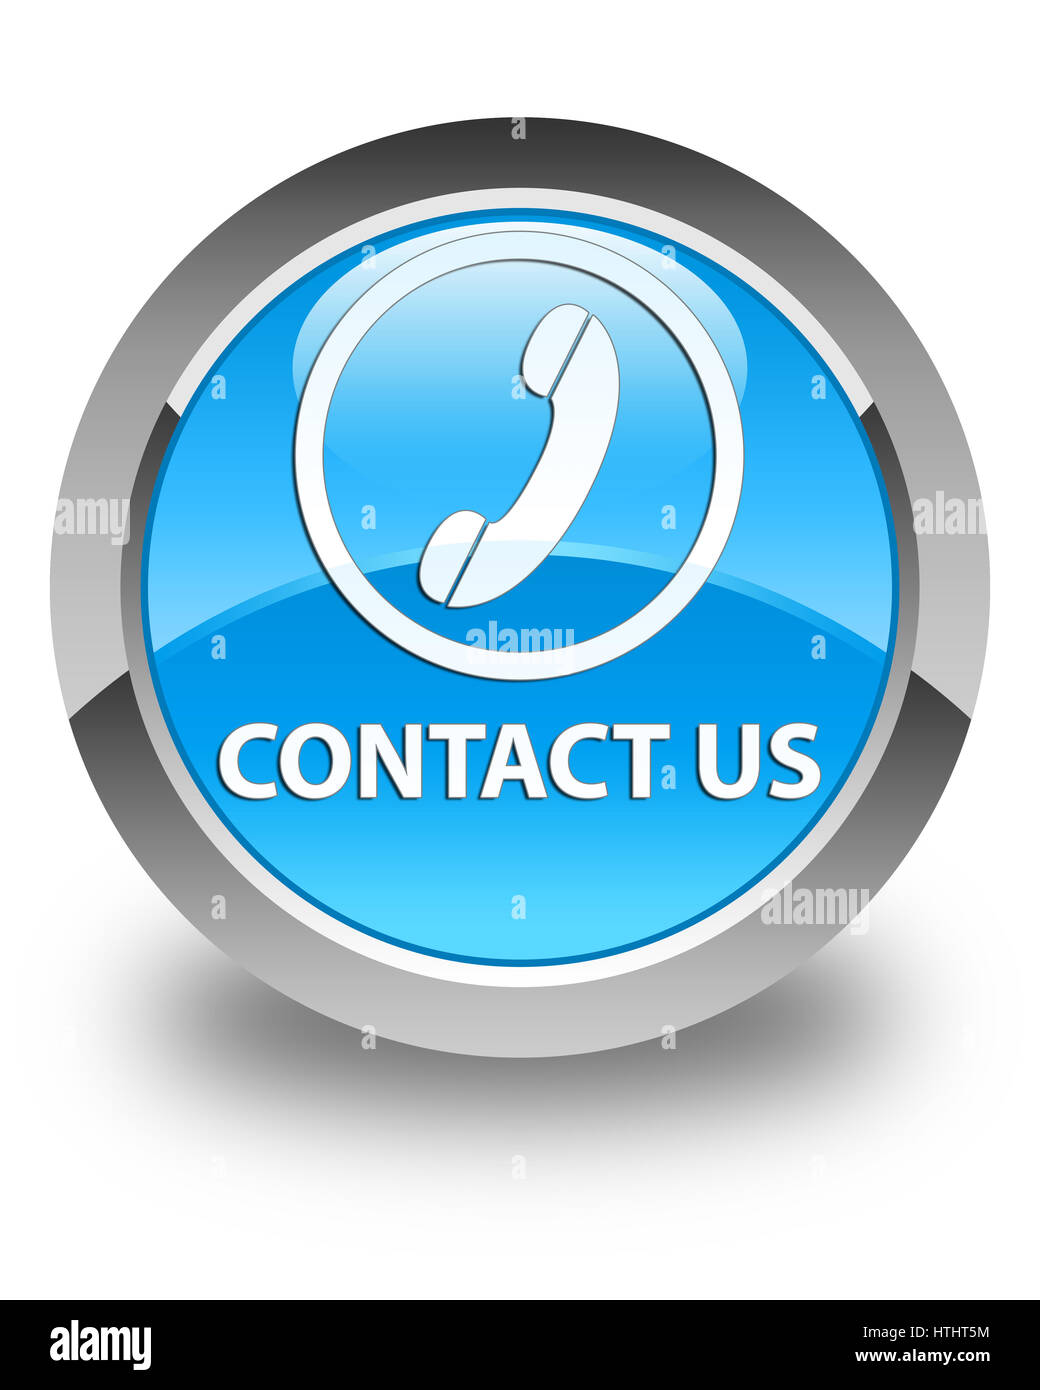 Contact us (phone icon) isolated on glossy cyan blue round